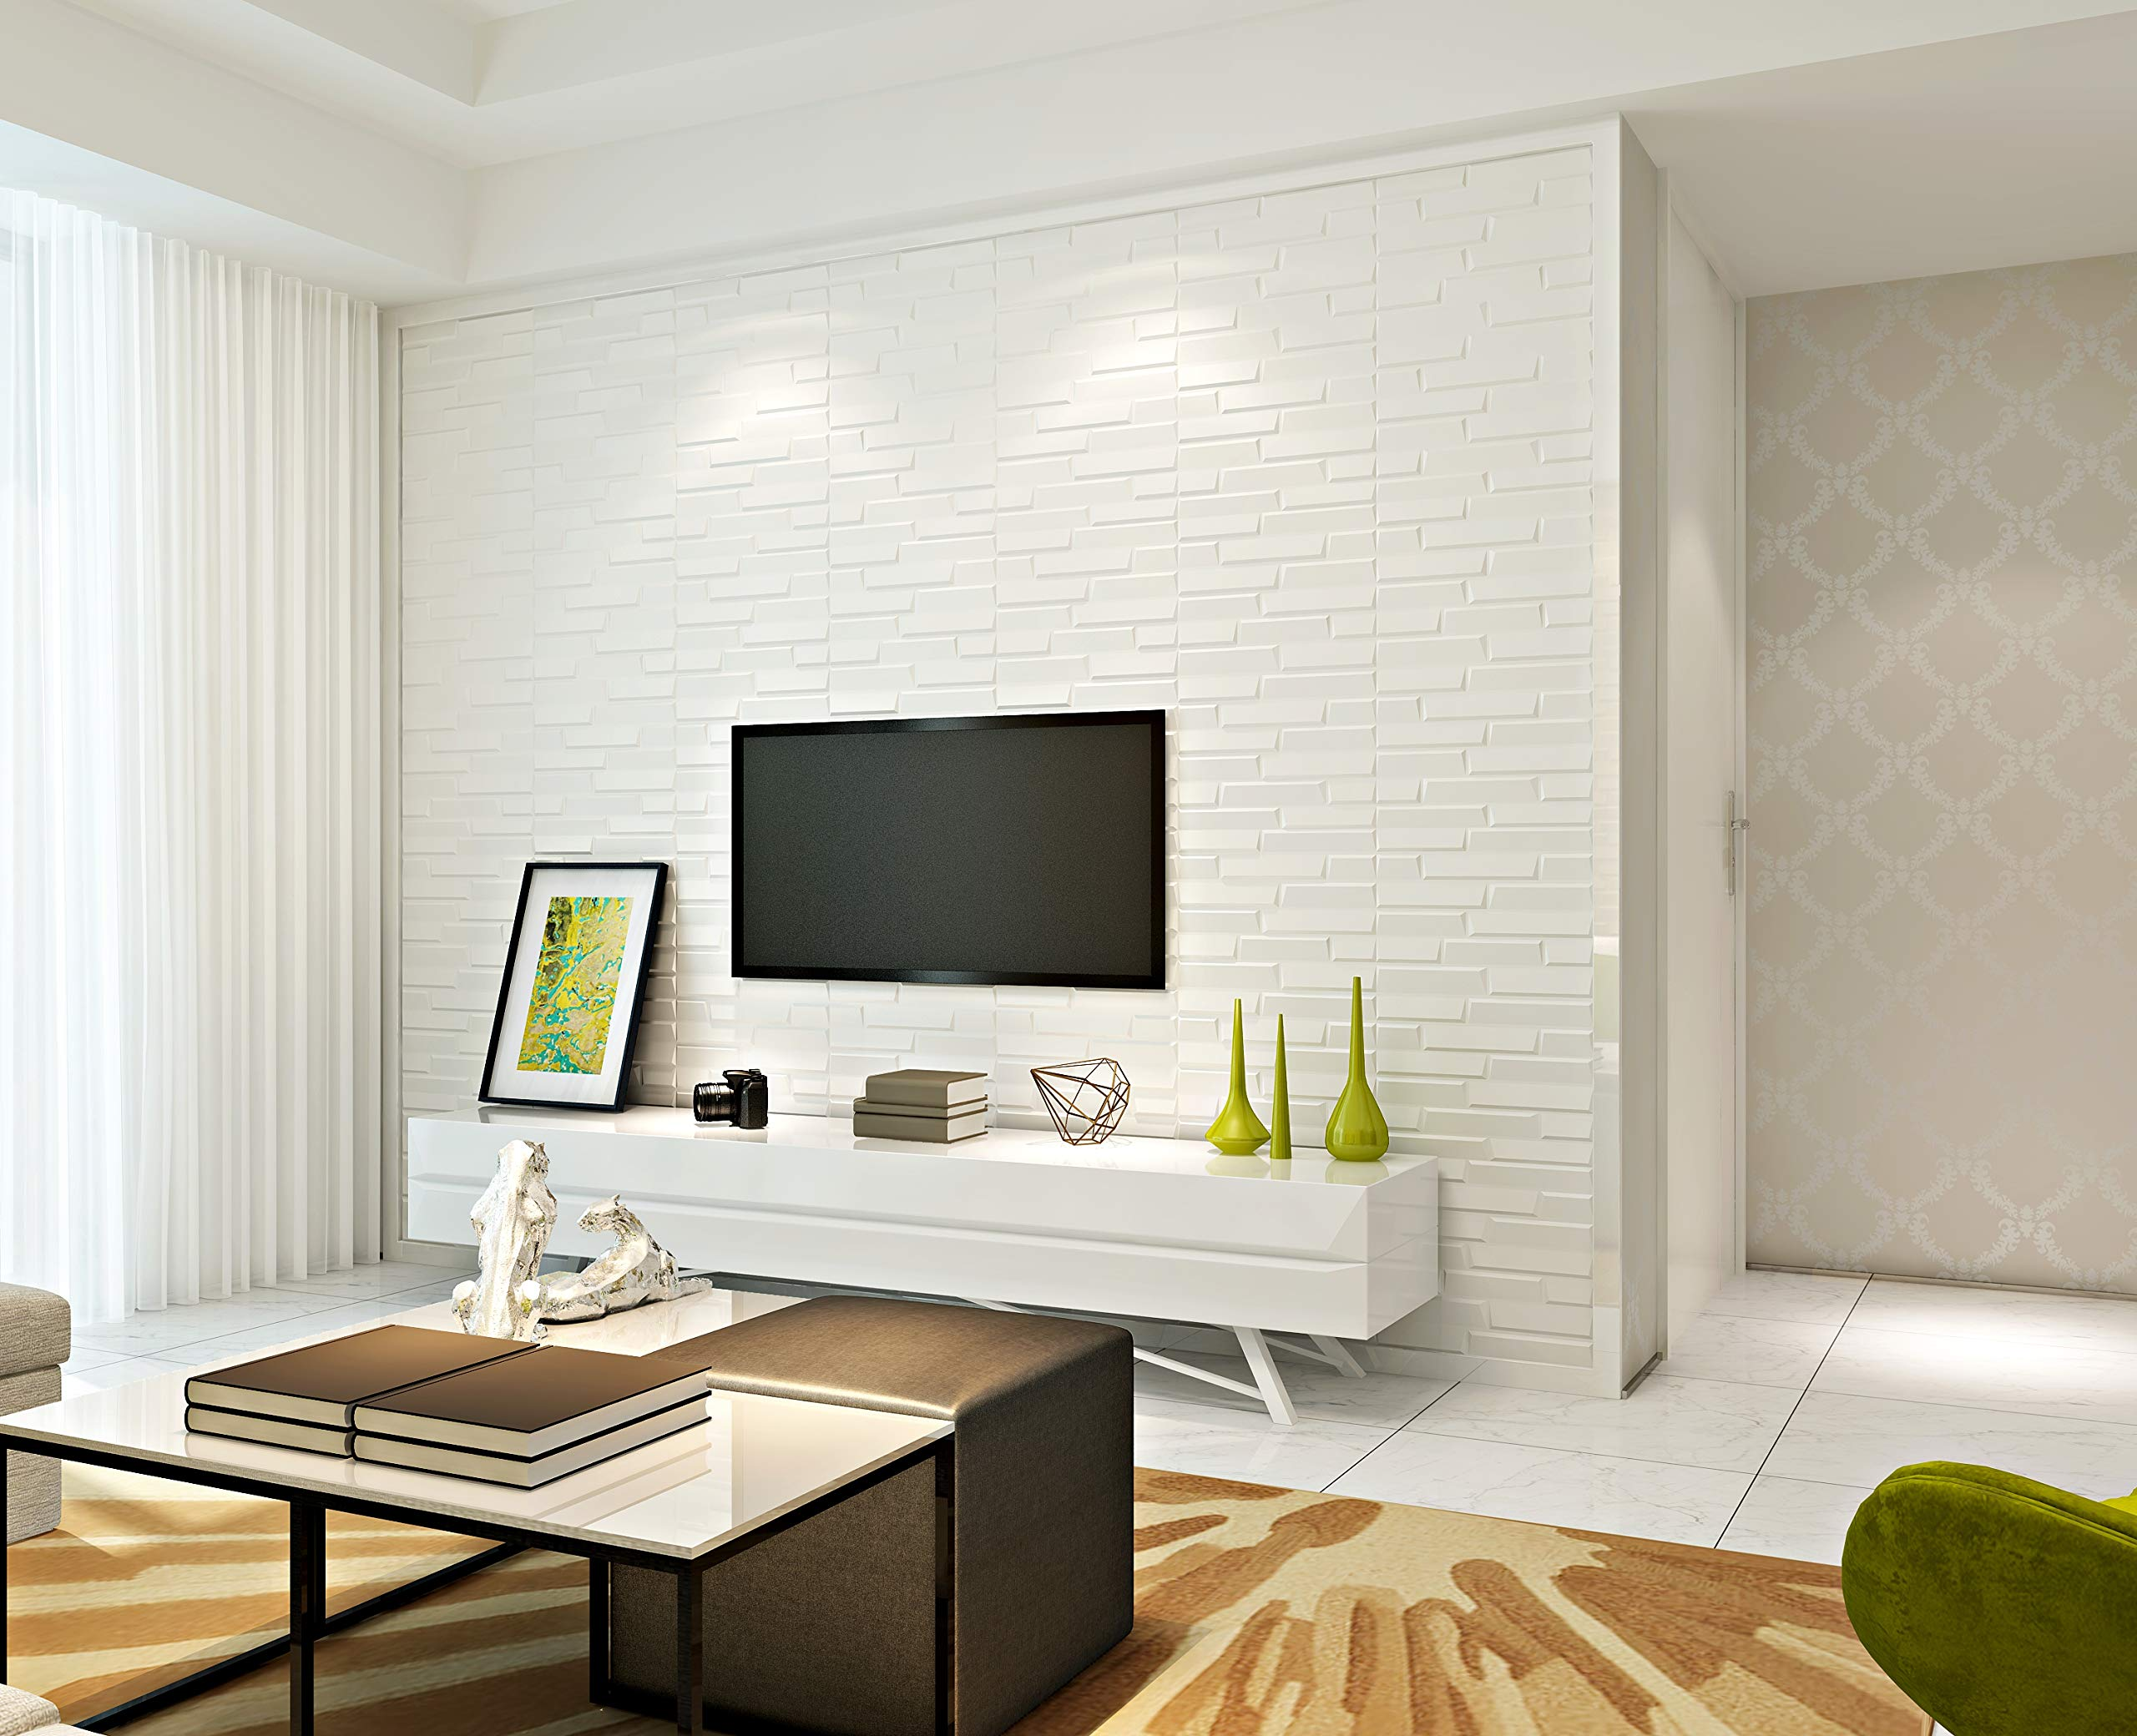 Art3d Peel and Stick 3D Wall Panels for Interior Wall Decor, White, 27.5''x30.7'' (10 Pack) by Art3d (Image #4)